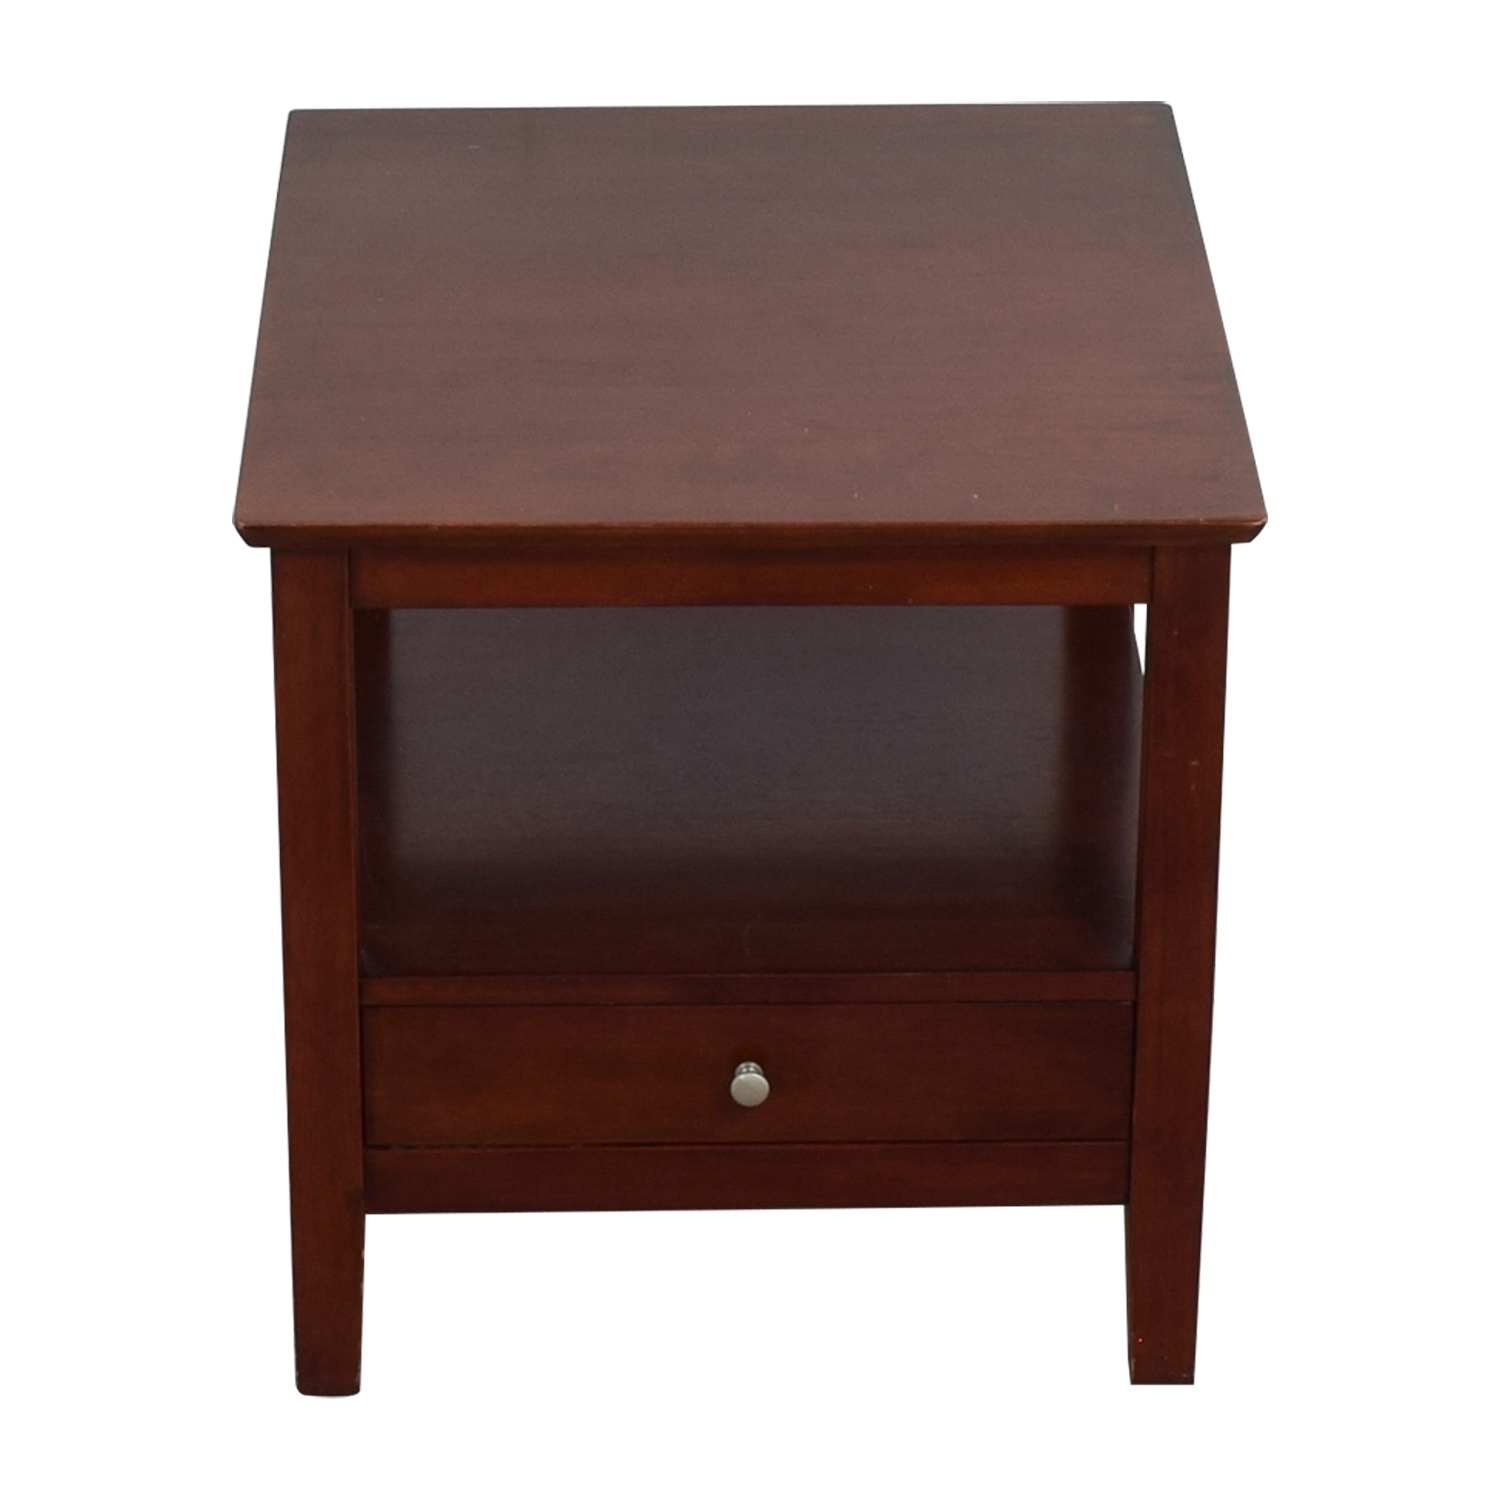 Solid Wood End Table with Drawer dimensions